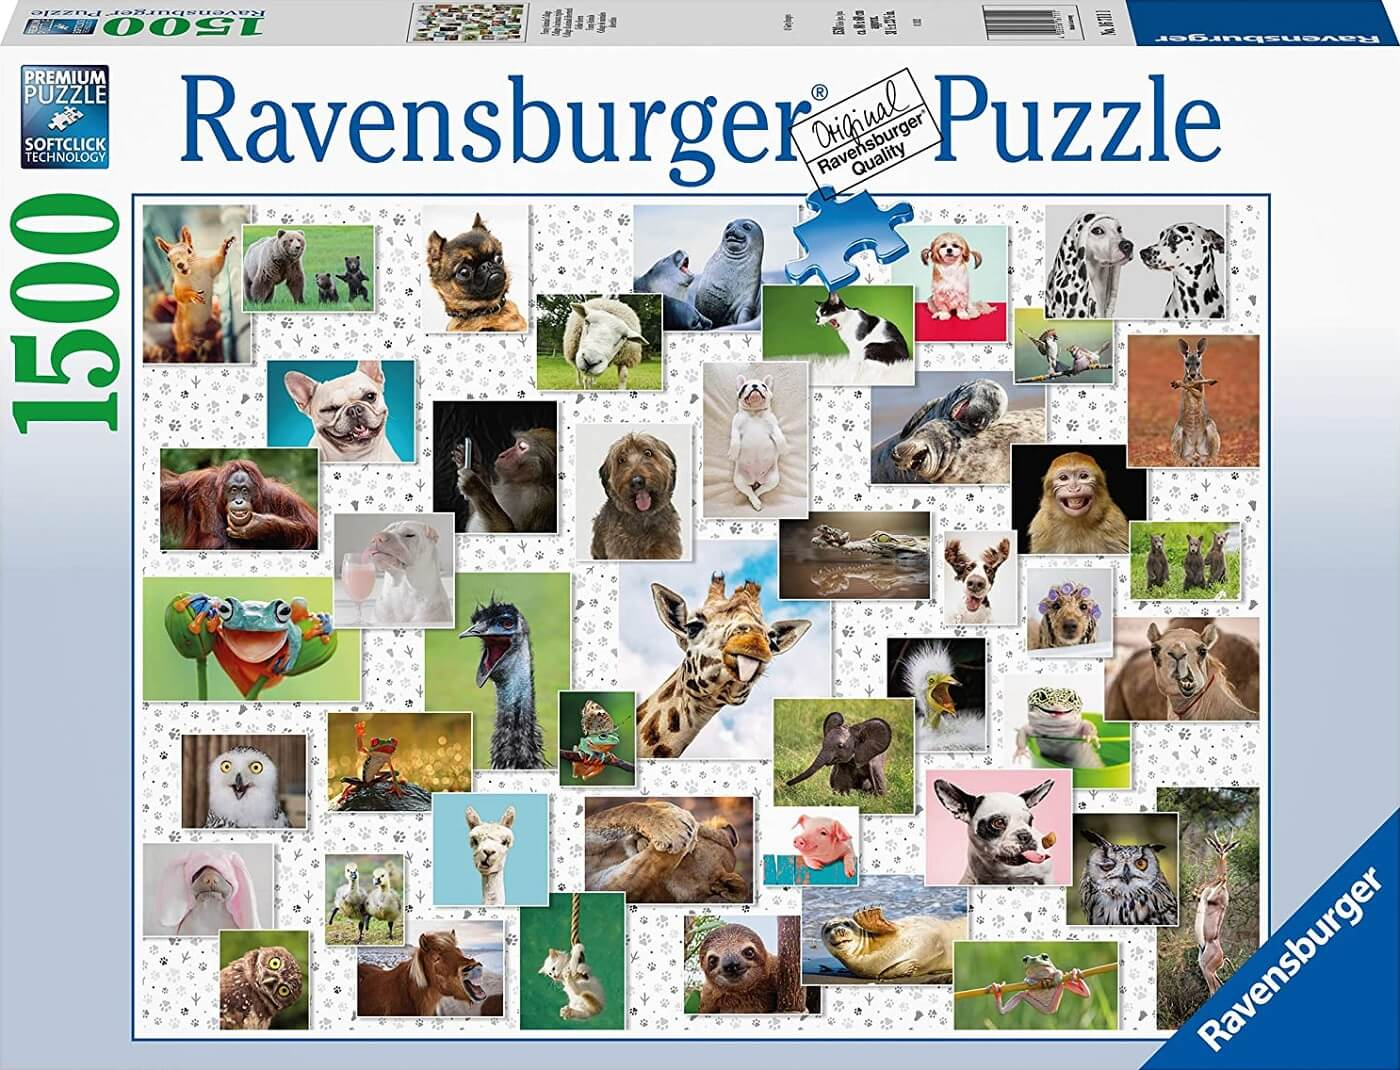 Puzzle Ravensburger Collage de Animales Divertidos de 1500 Pieza